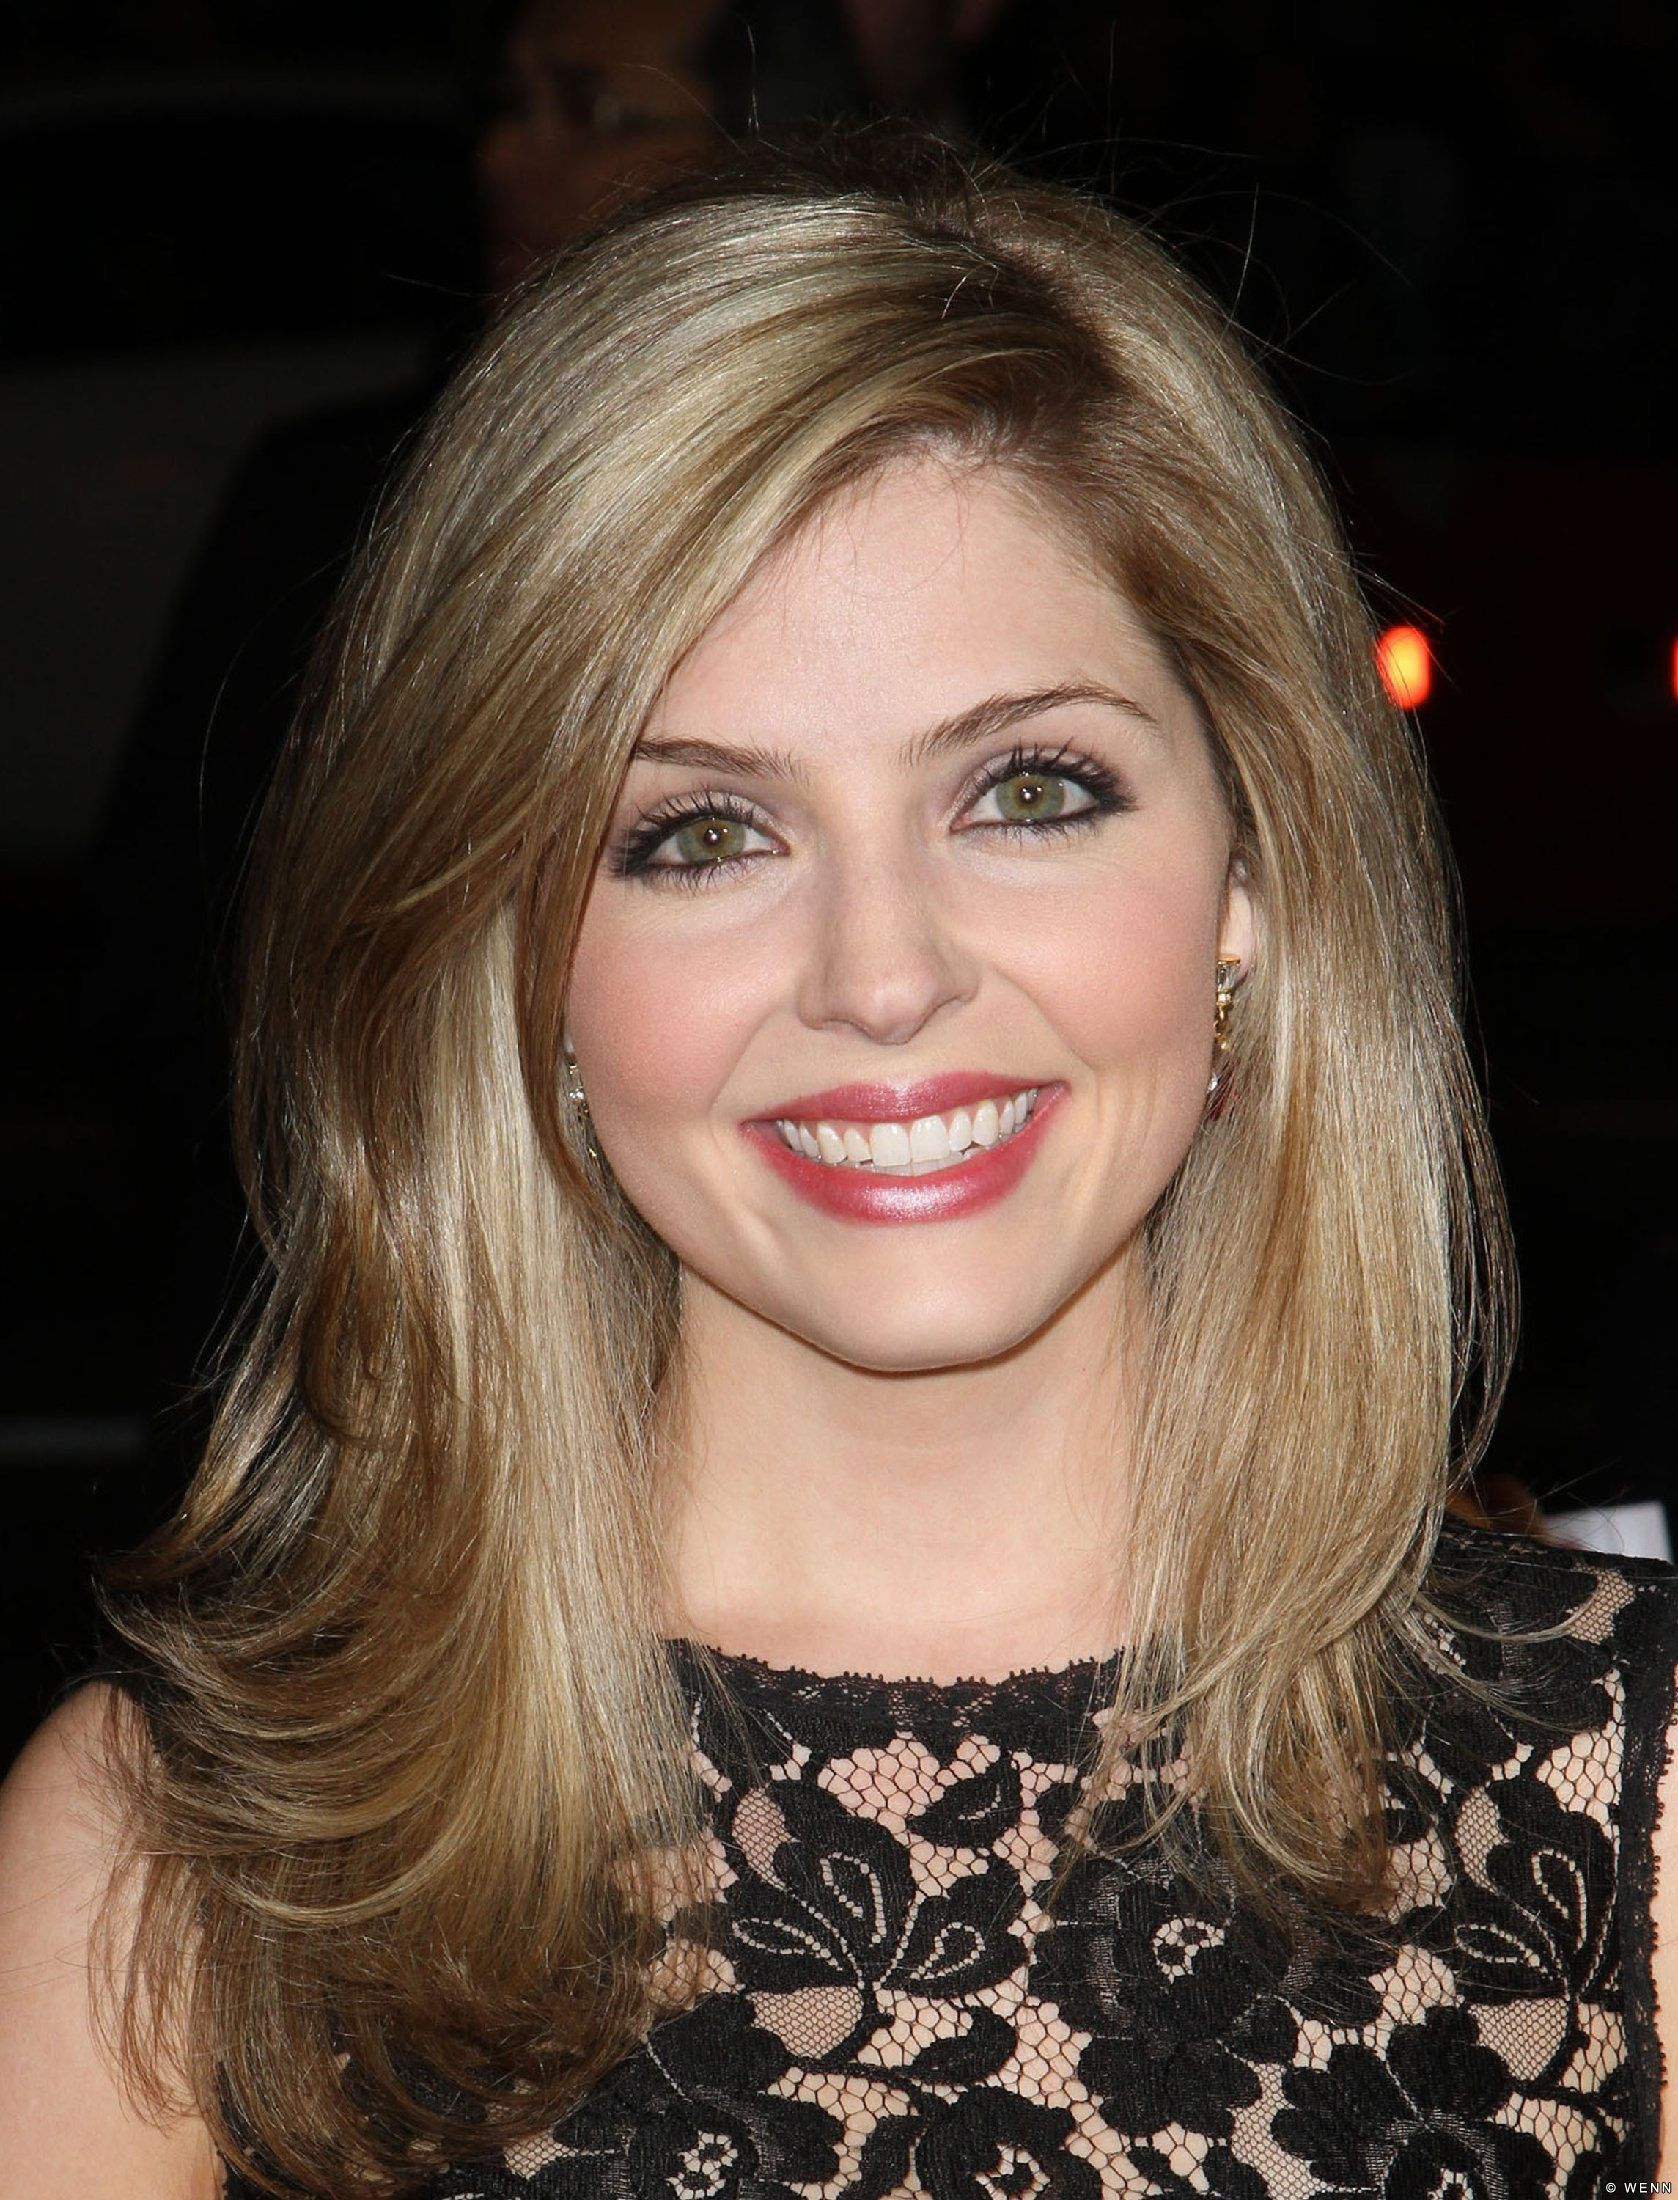 jen lilley husbandjen lilley insta, jen lilley instagram, jen lilley, jen lilley movies, jen lilley twitter, jen lilley singing, jen lilley and jason wayne, jen lilley days of our lives, jen lilley feet, jen lilley husband, jen lilley imdb, jen lilley net worth, jen lilley husband jason wayne, jen lilley biography, jen lilley height, jen lilley pregnant, jen lilley christmas movie, jen lilley facebook, jen lilley boyfriend, jen lilley hot